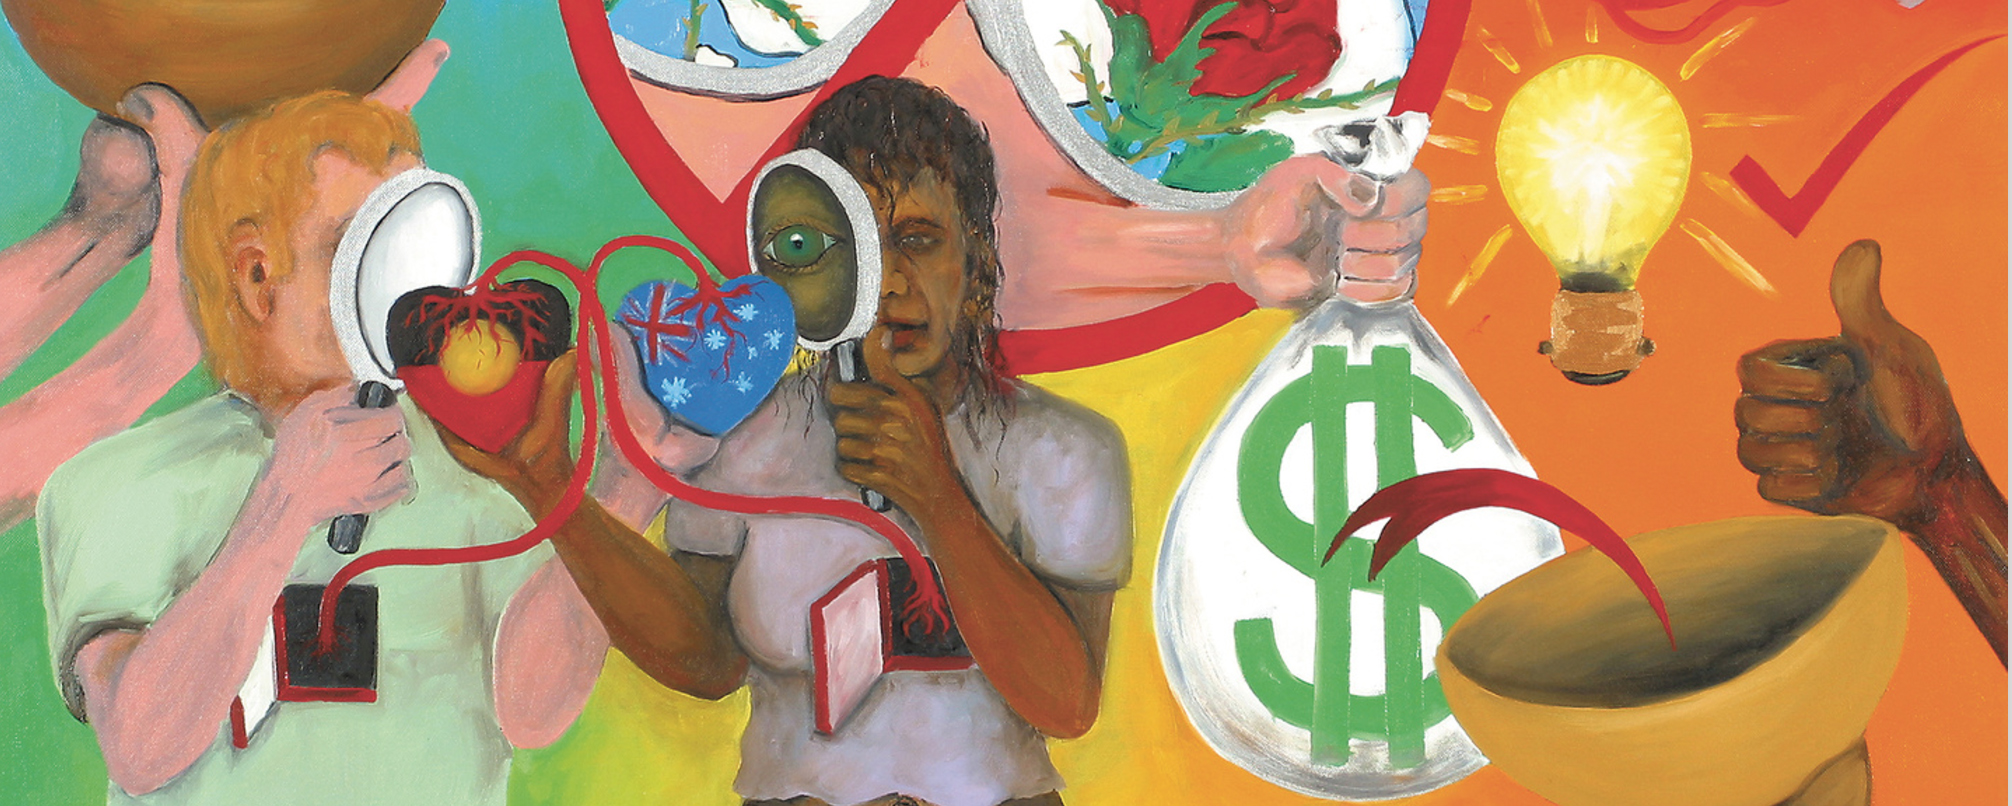 Gordon Hookey, You Can't Have Our Spirituality without Our Political Reality (2003), detail, oil on canvas, 101,5 × 122 cm